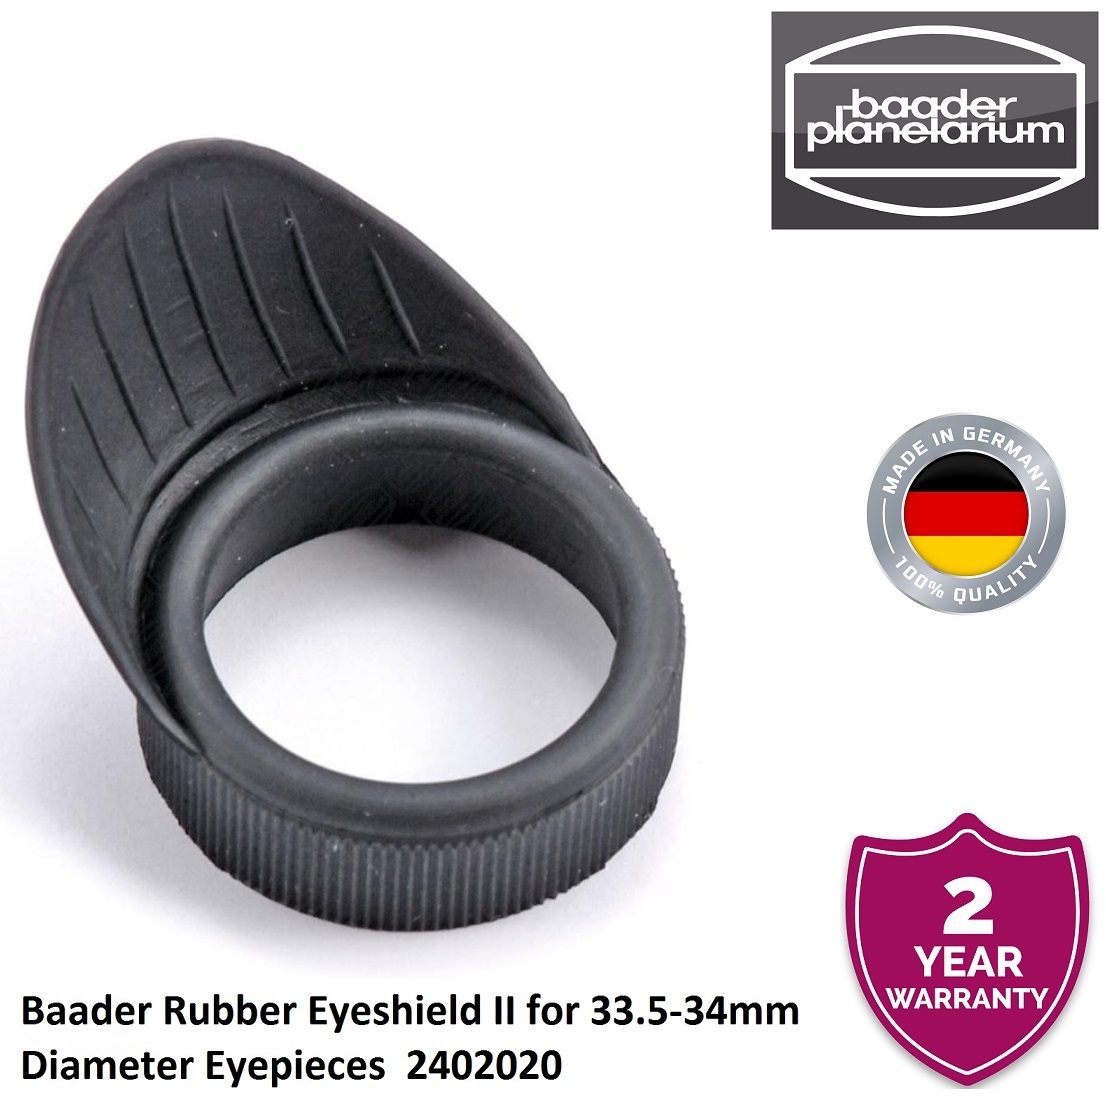 Baader Rubber Eyeshield II for 33.5-34mm Diameter Eyepieces